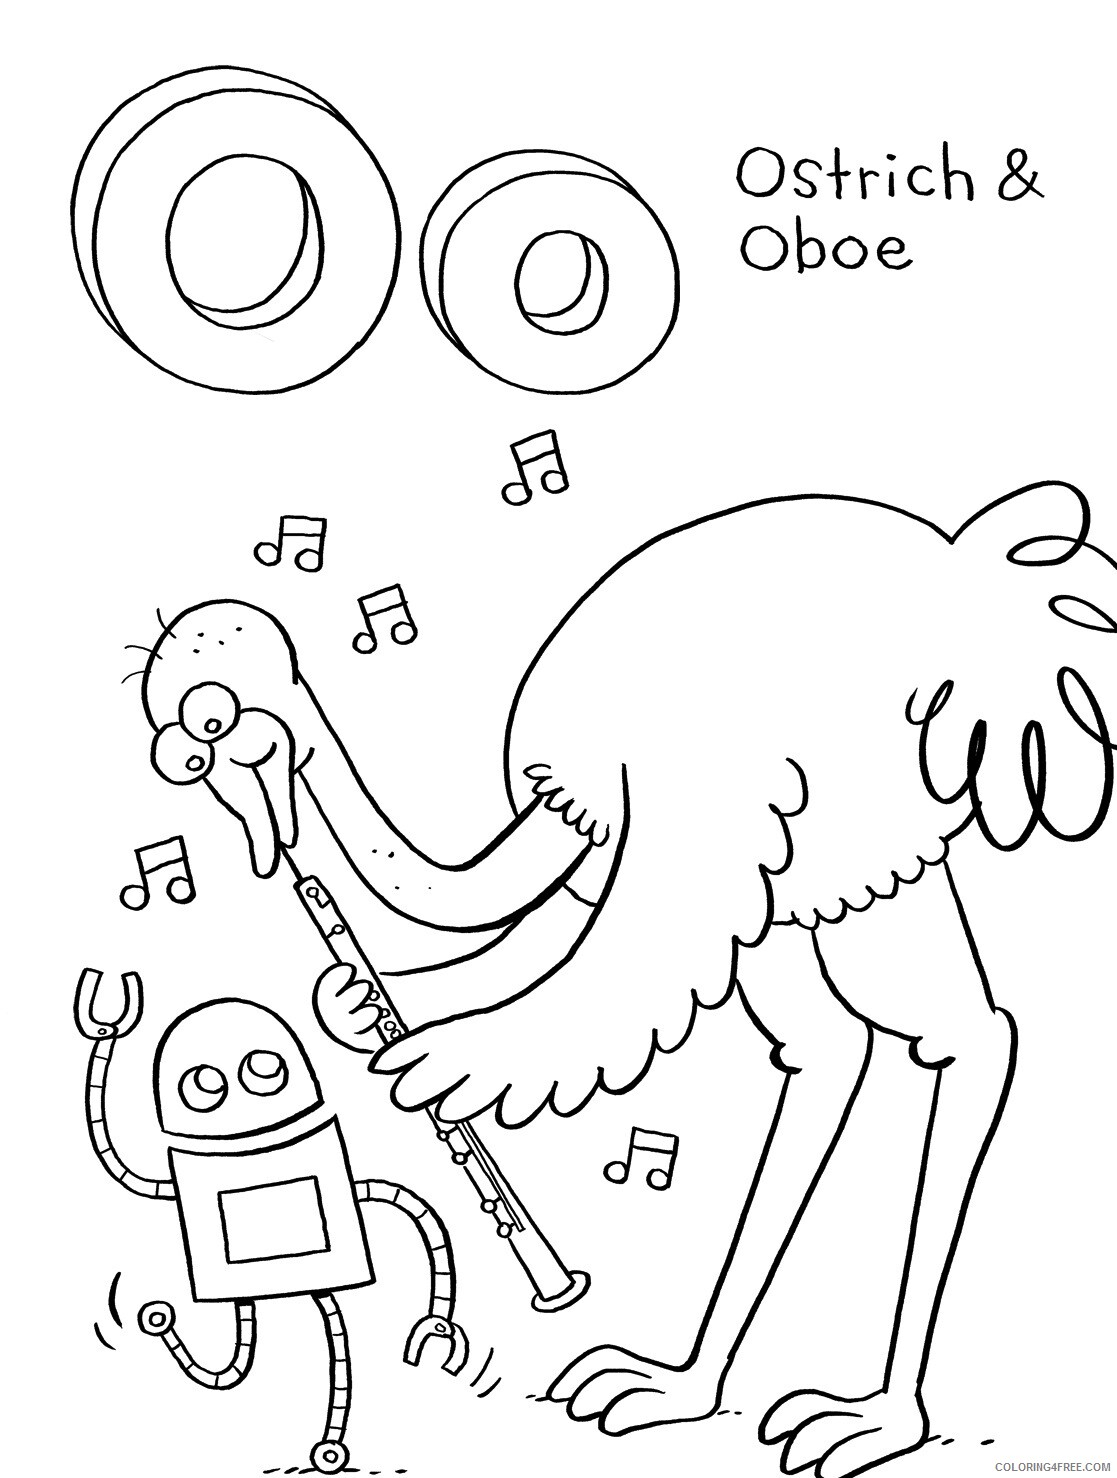 Ostrich Coloring Pages Animal Printable Sheets Ostrich Photos 2021 3571 Coloring4free